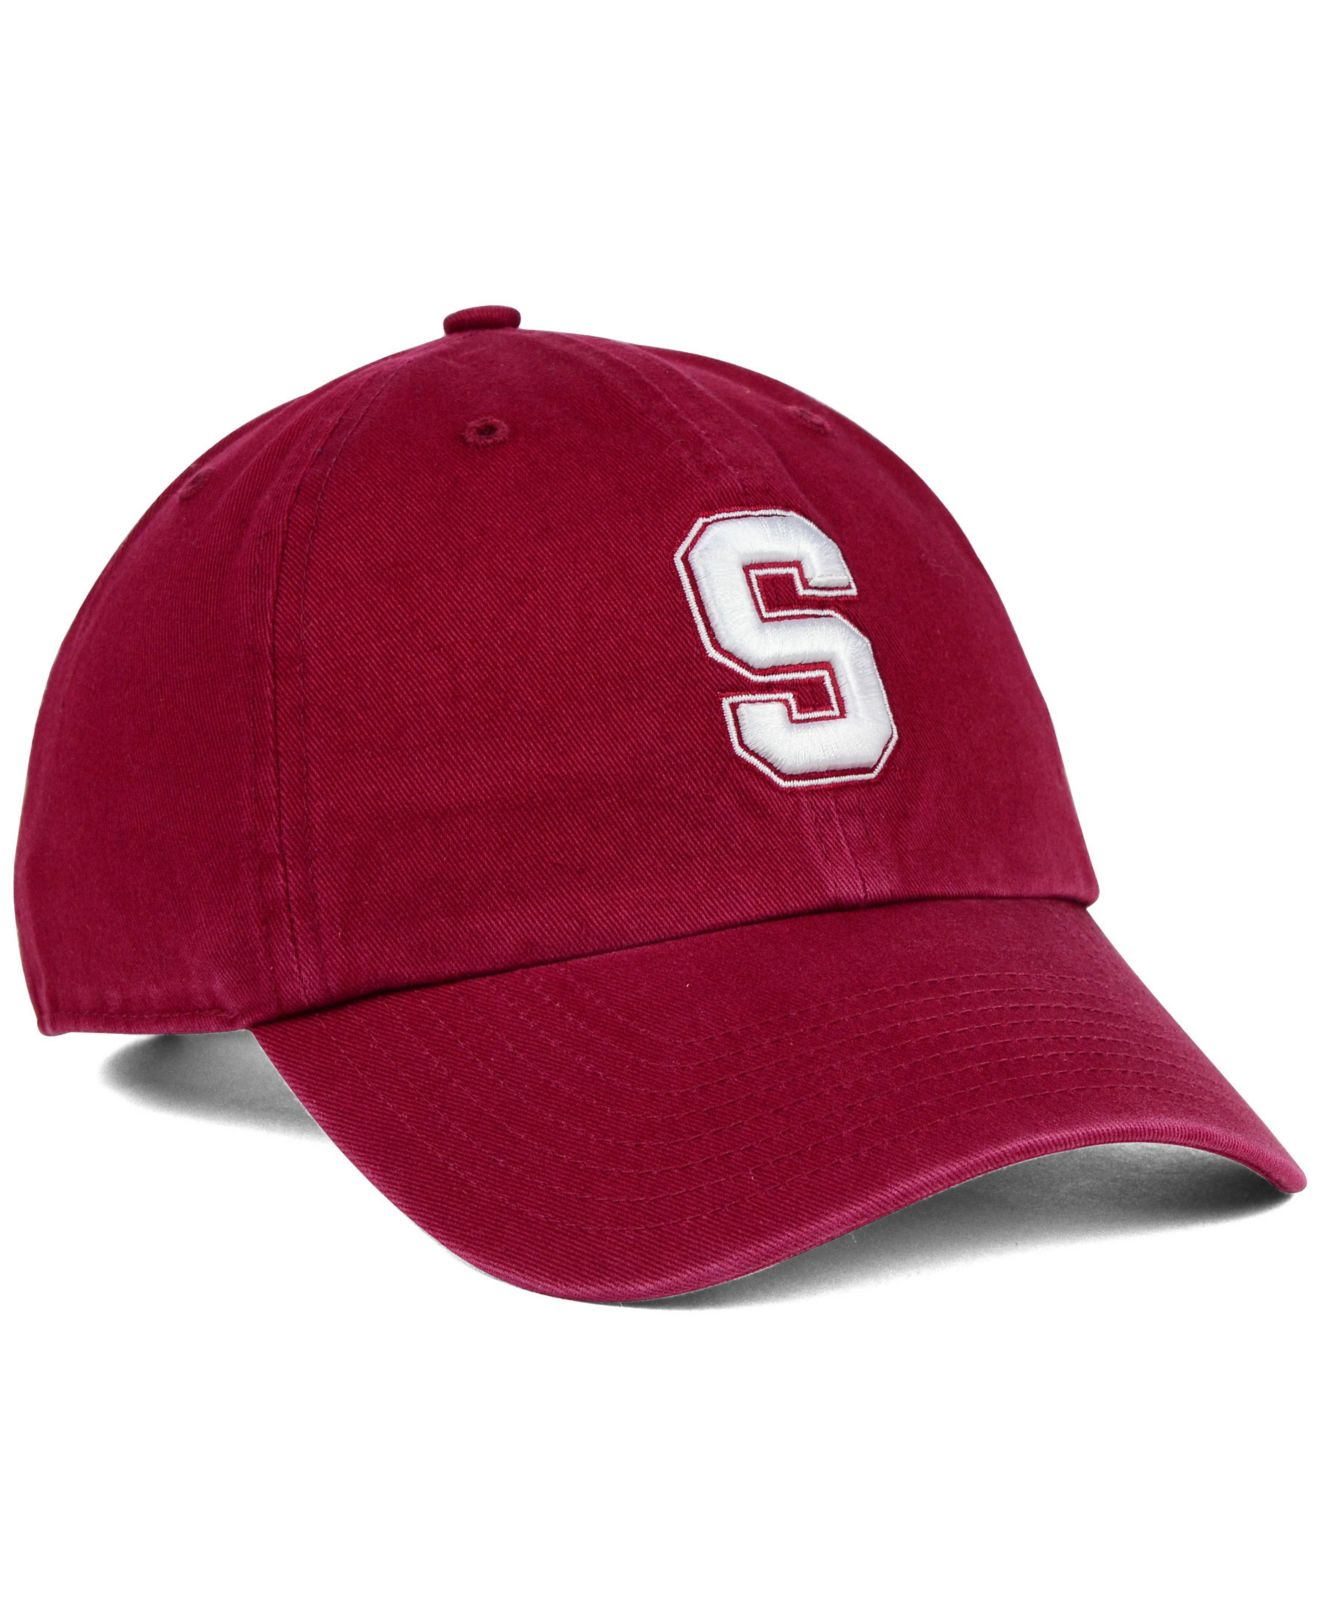 050d45ba9ab Lyst - 47 Brand Stanford Cardinal Clean-up Cap in Red for Men